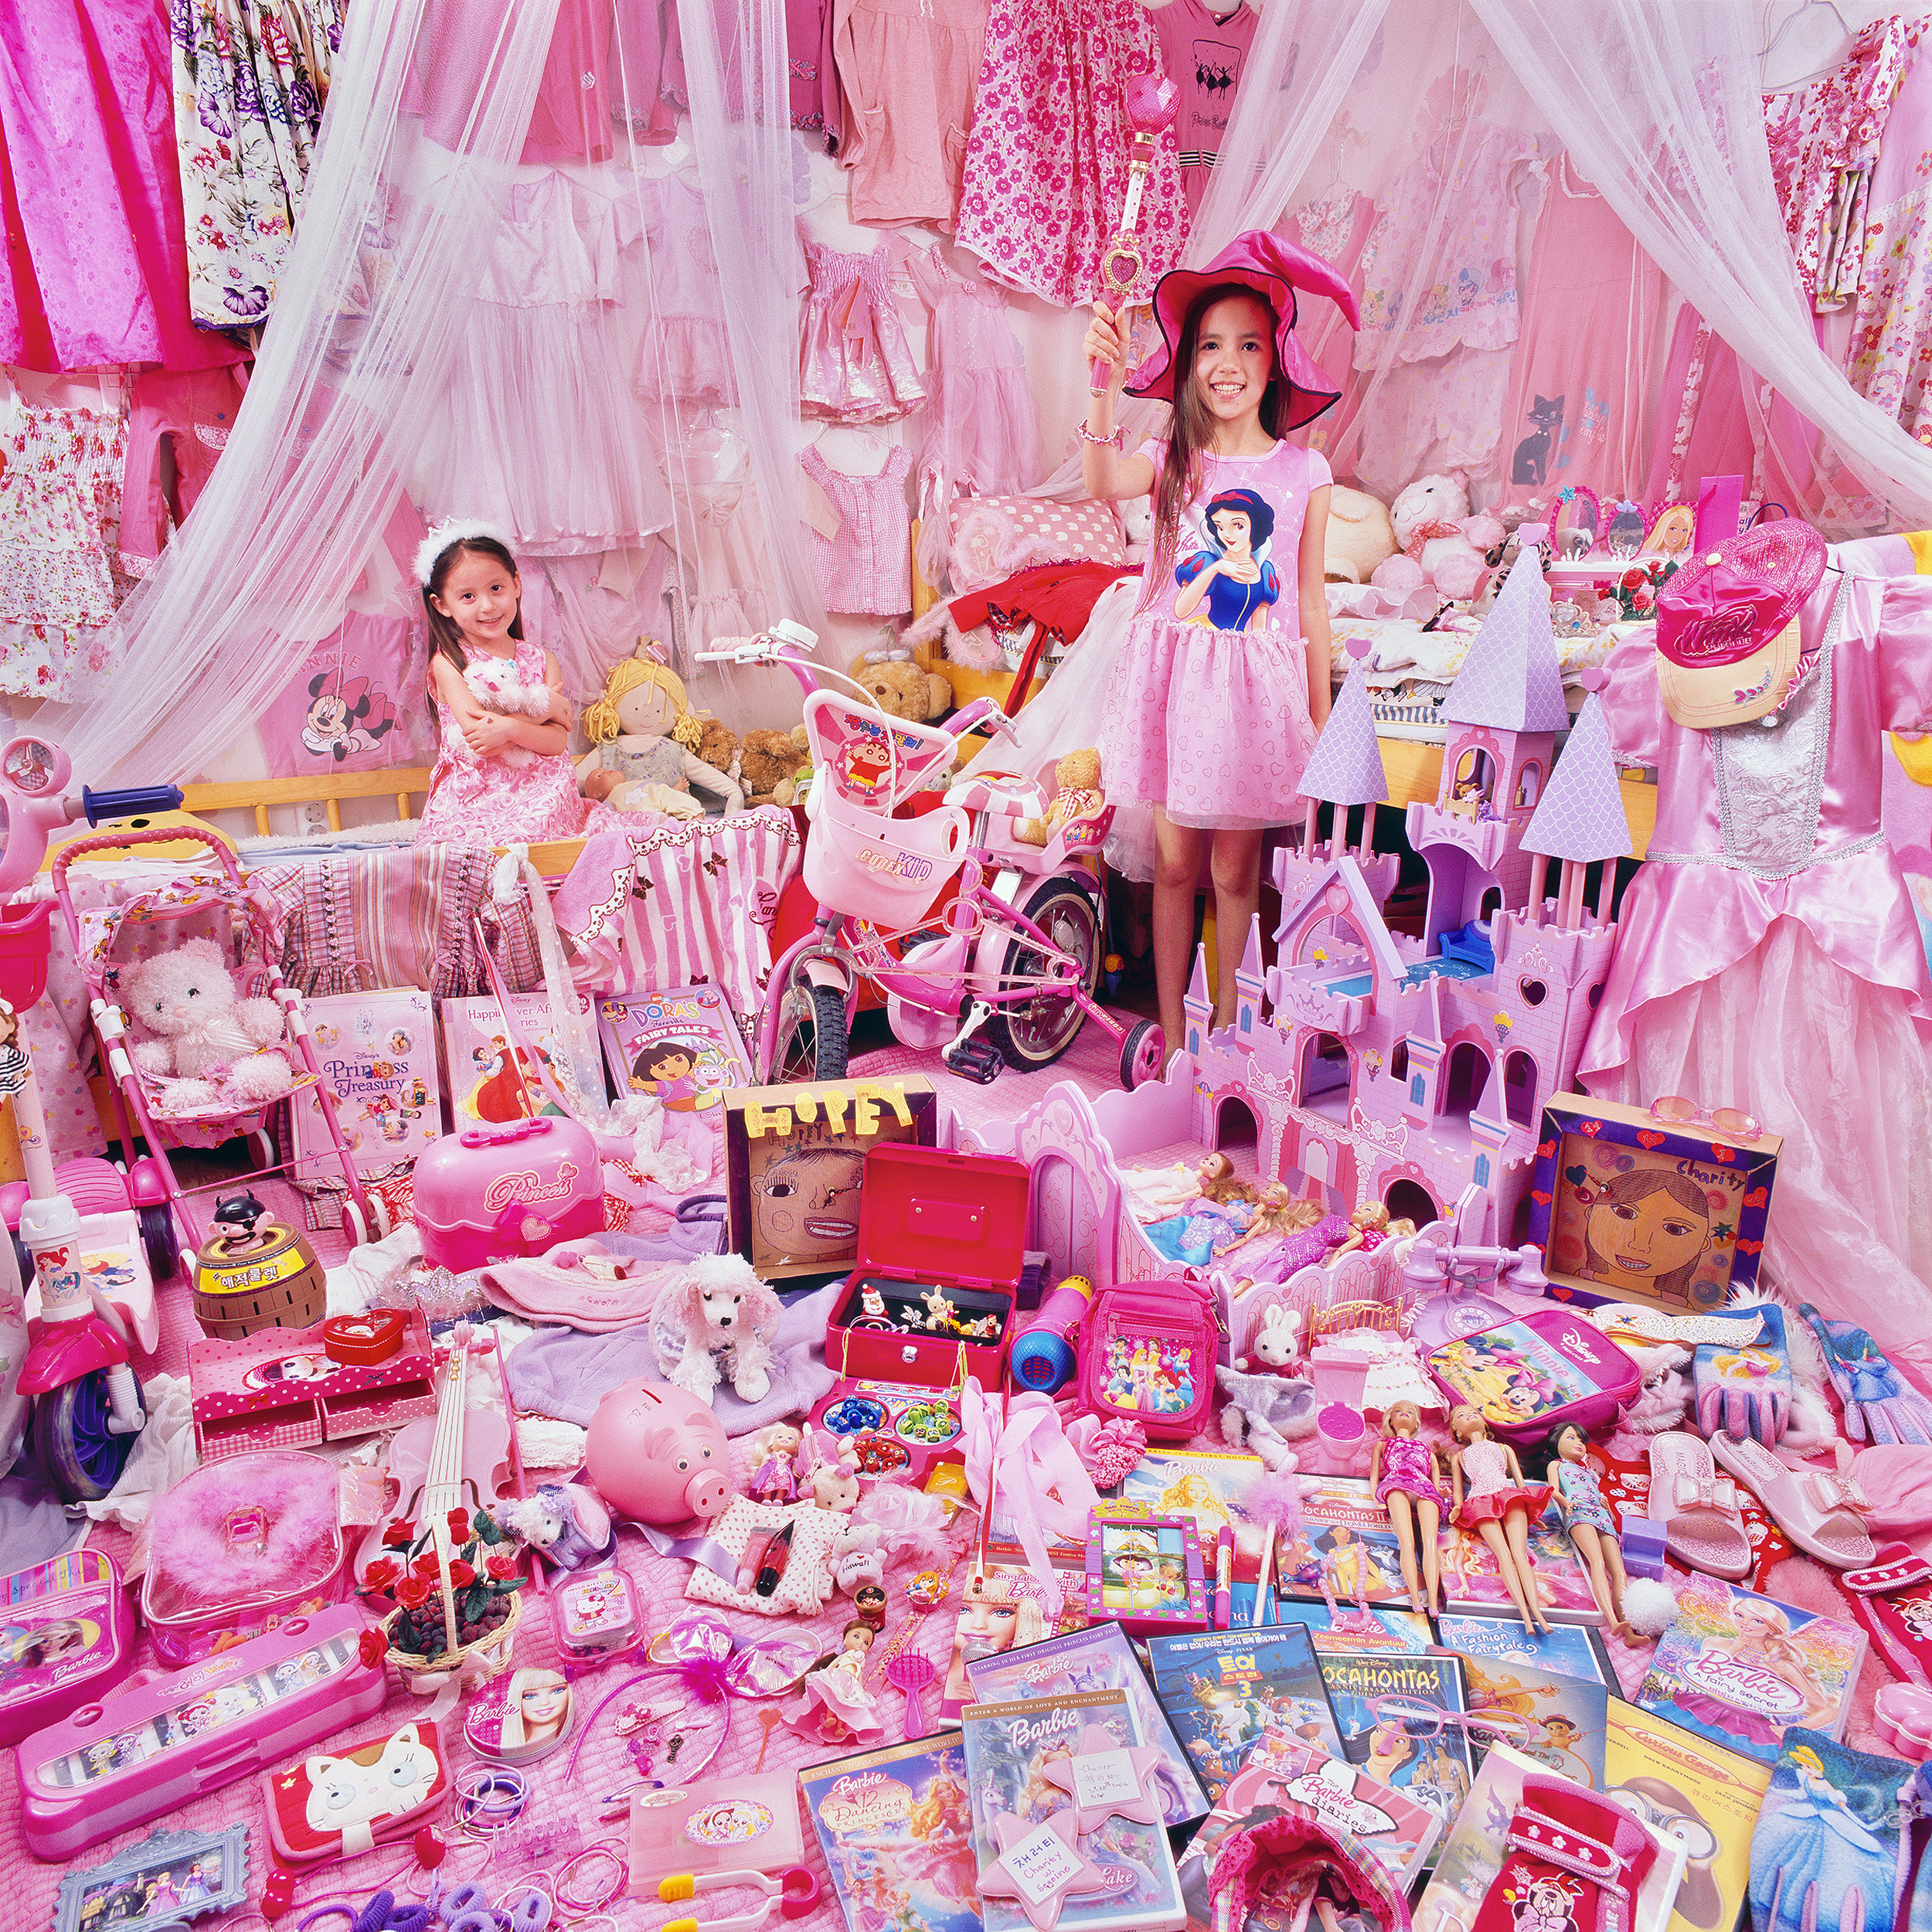 The Pink Project-Charity & Hopey and Their Pink Things, Gyeonggi-do, South Korea. Light jet print, 2011. ©JeongMee Yoon.